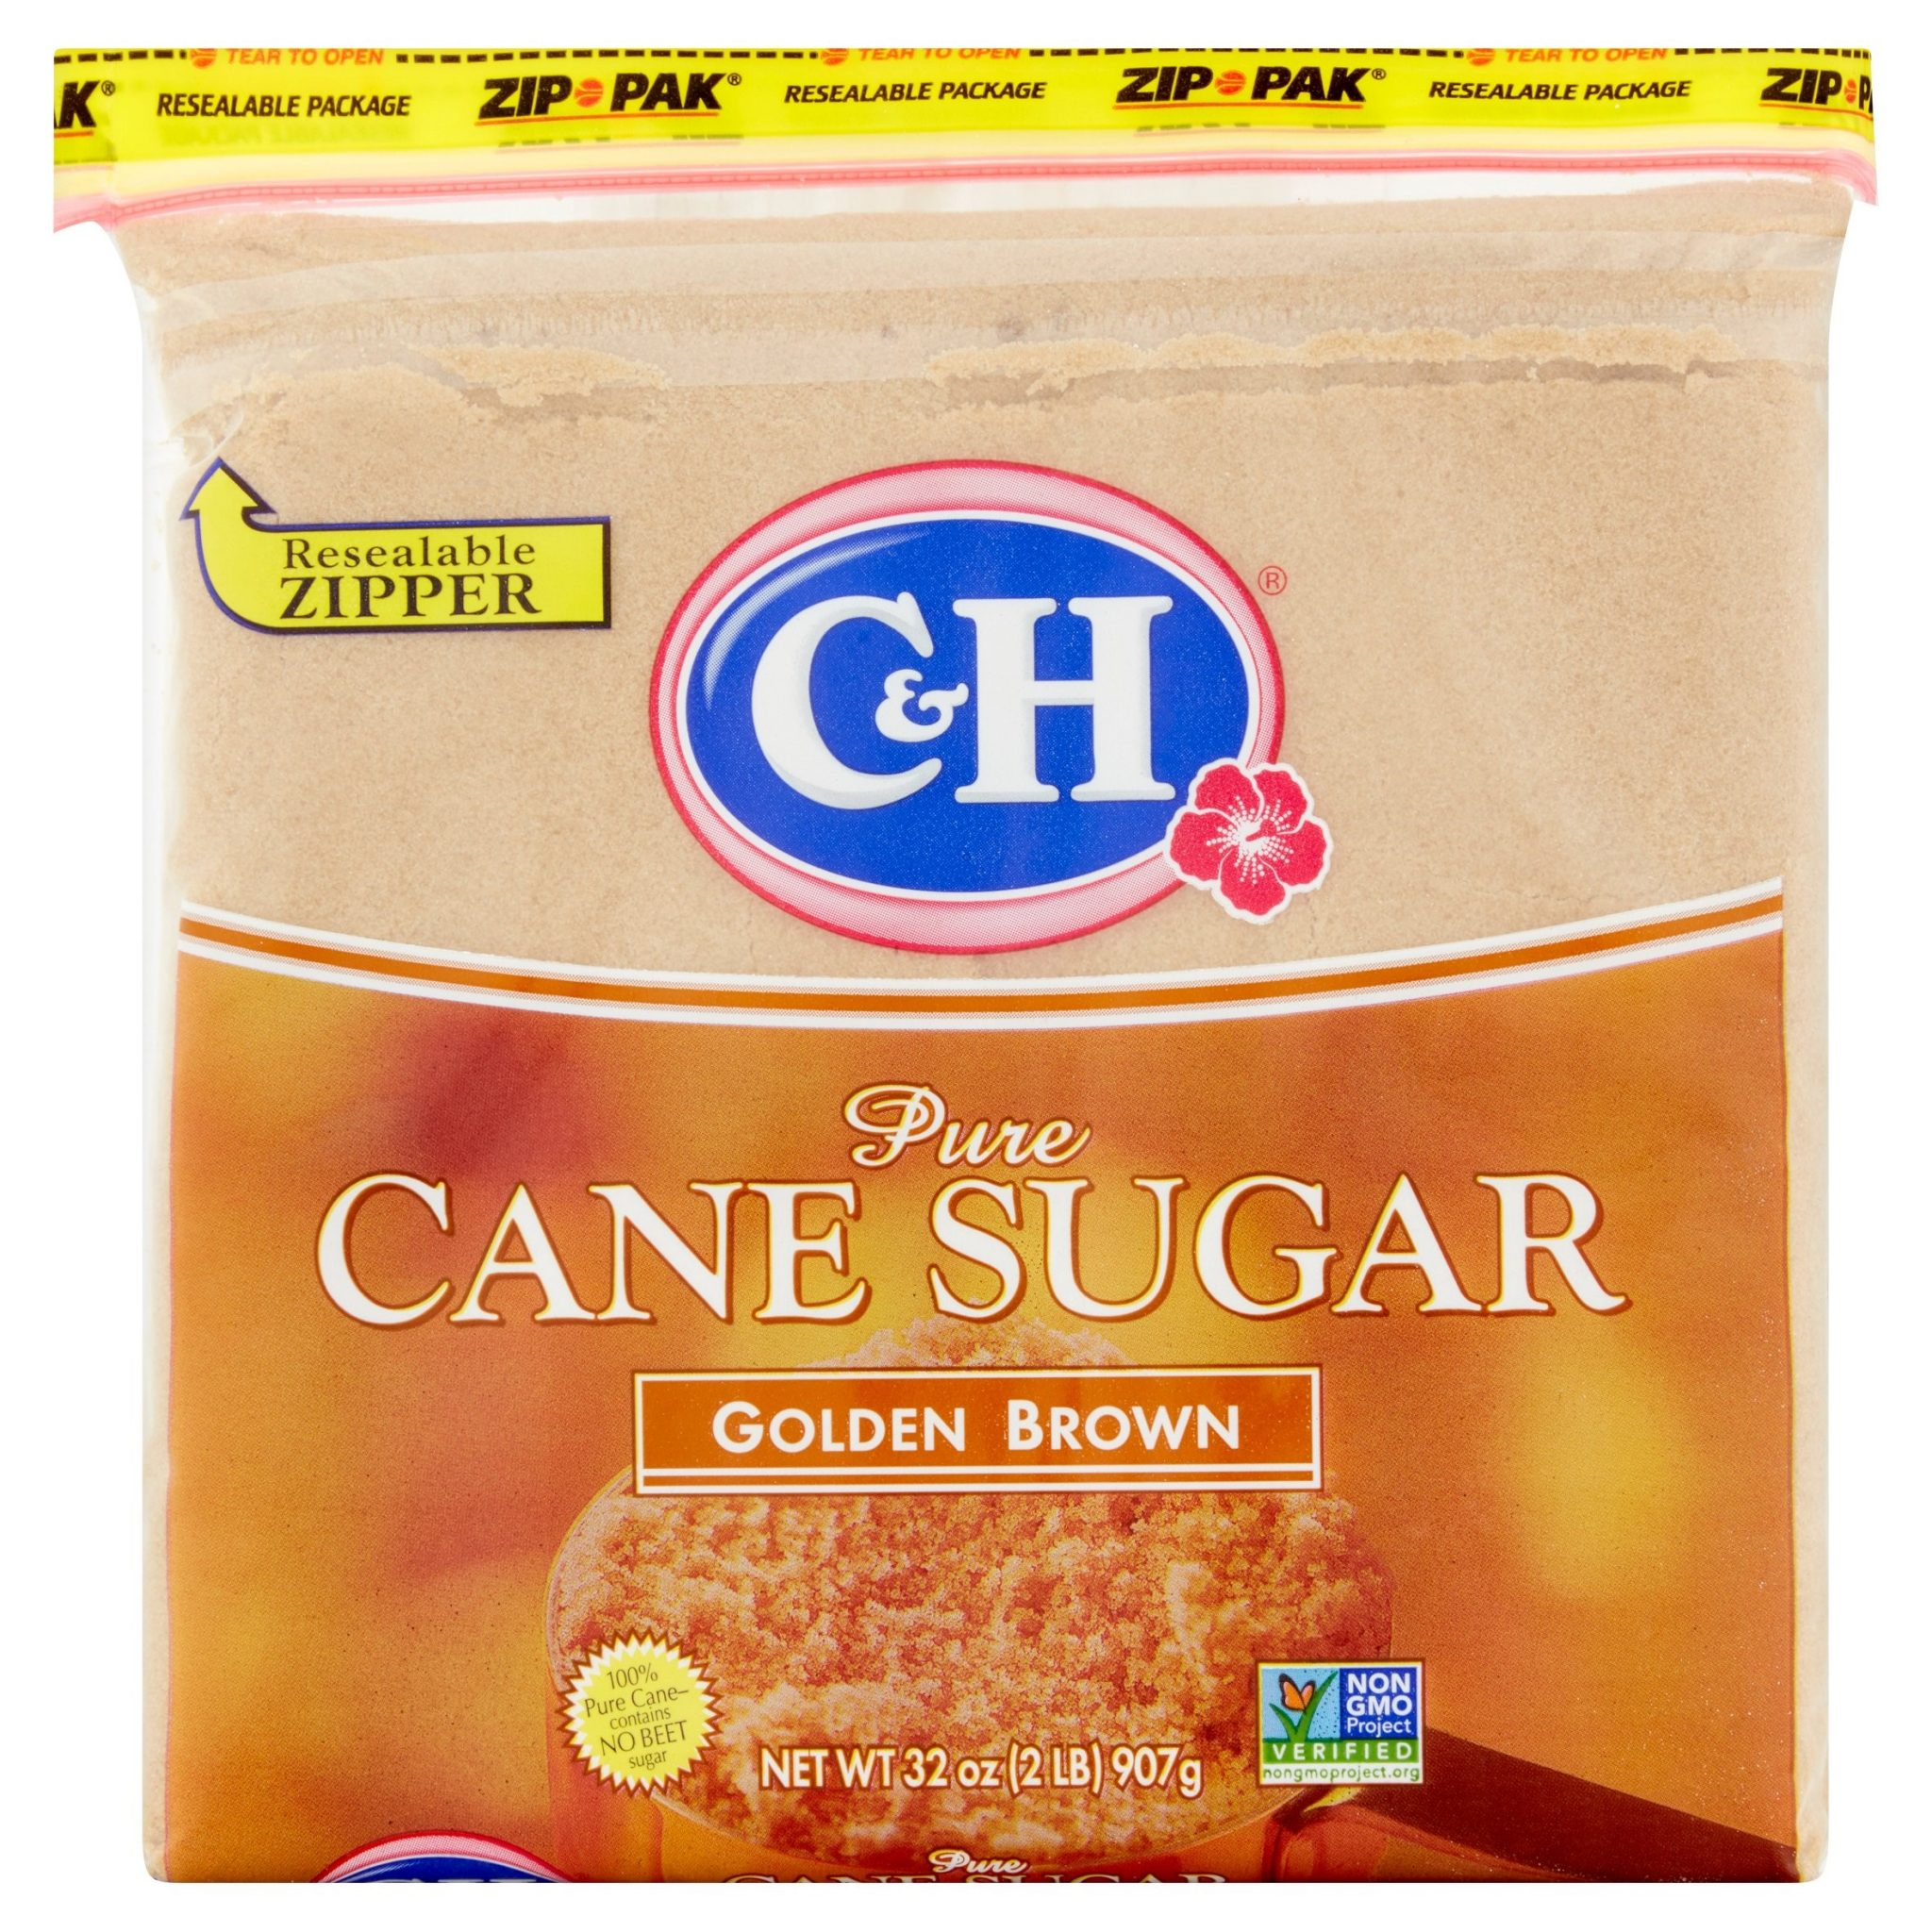 Check Out This Sweet Price on Powdered or Brown Sugar at Safeway!!